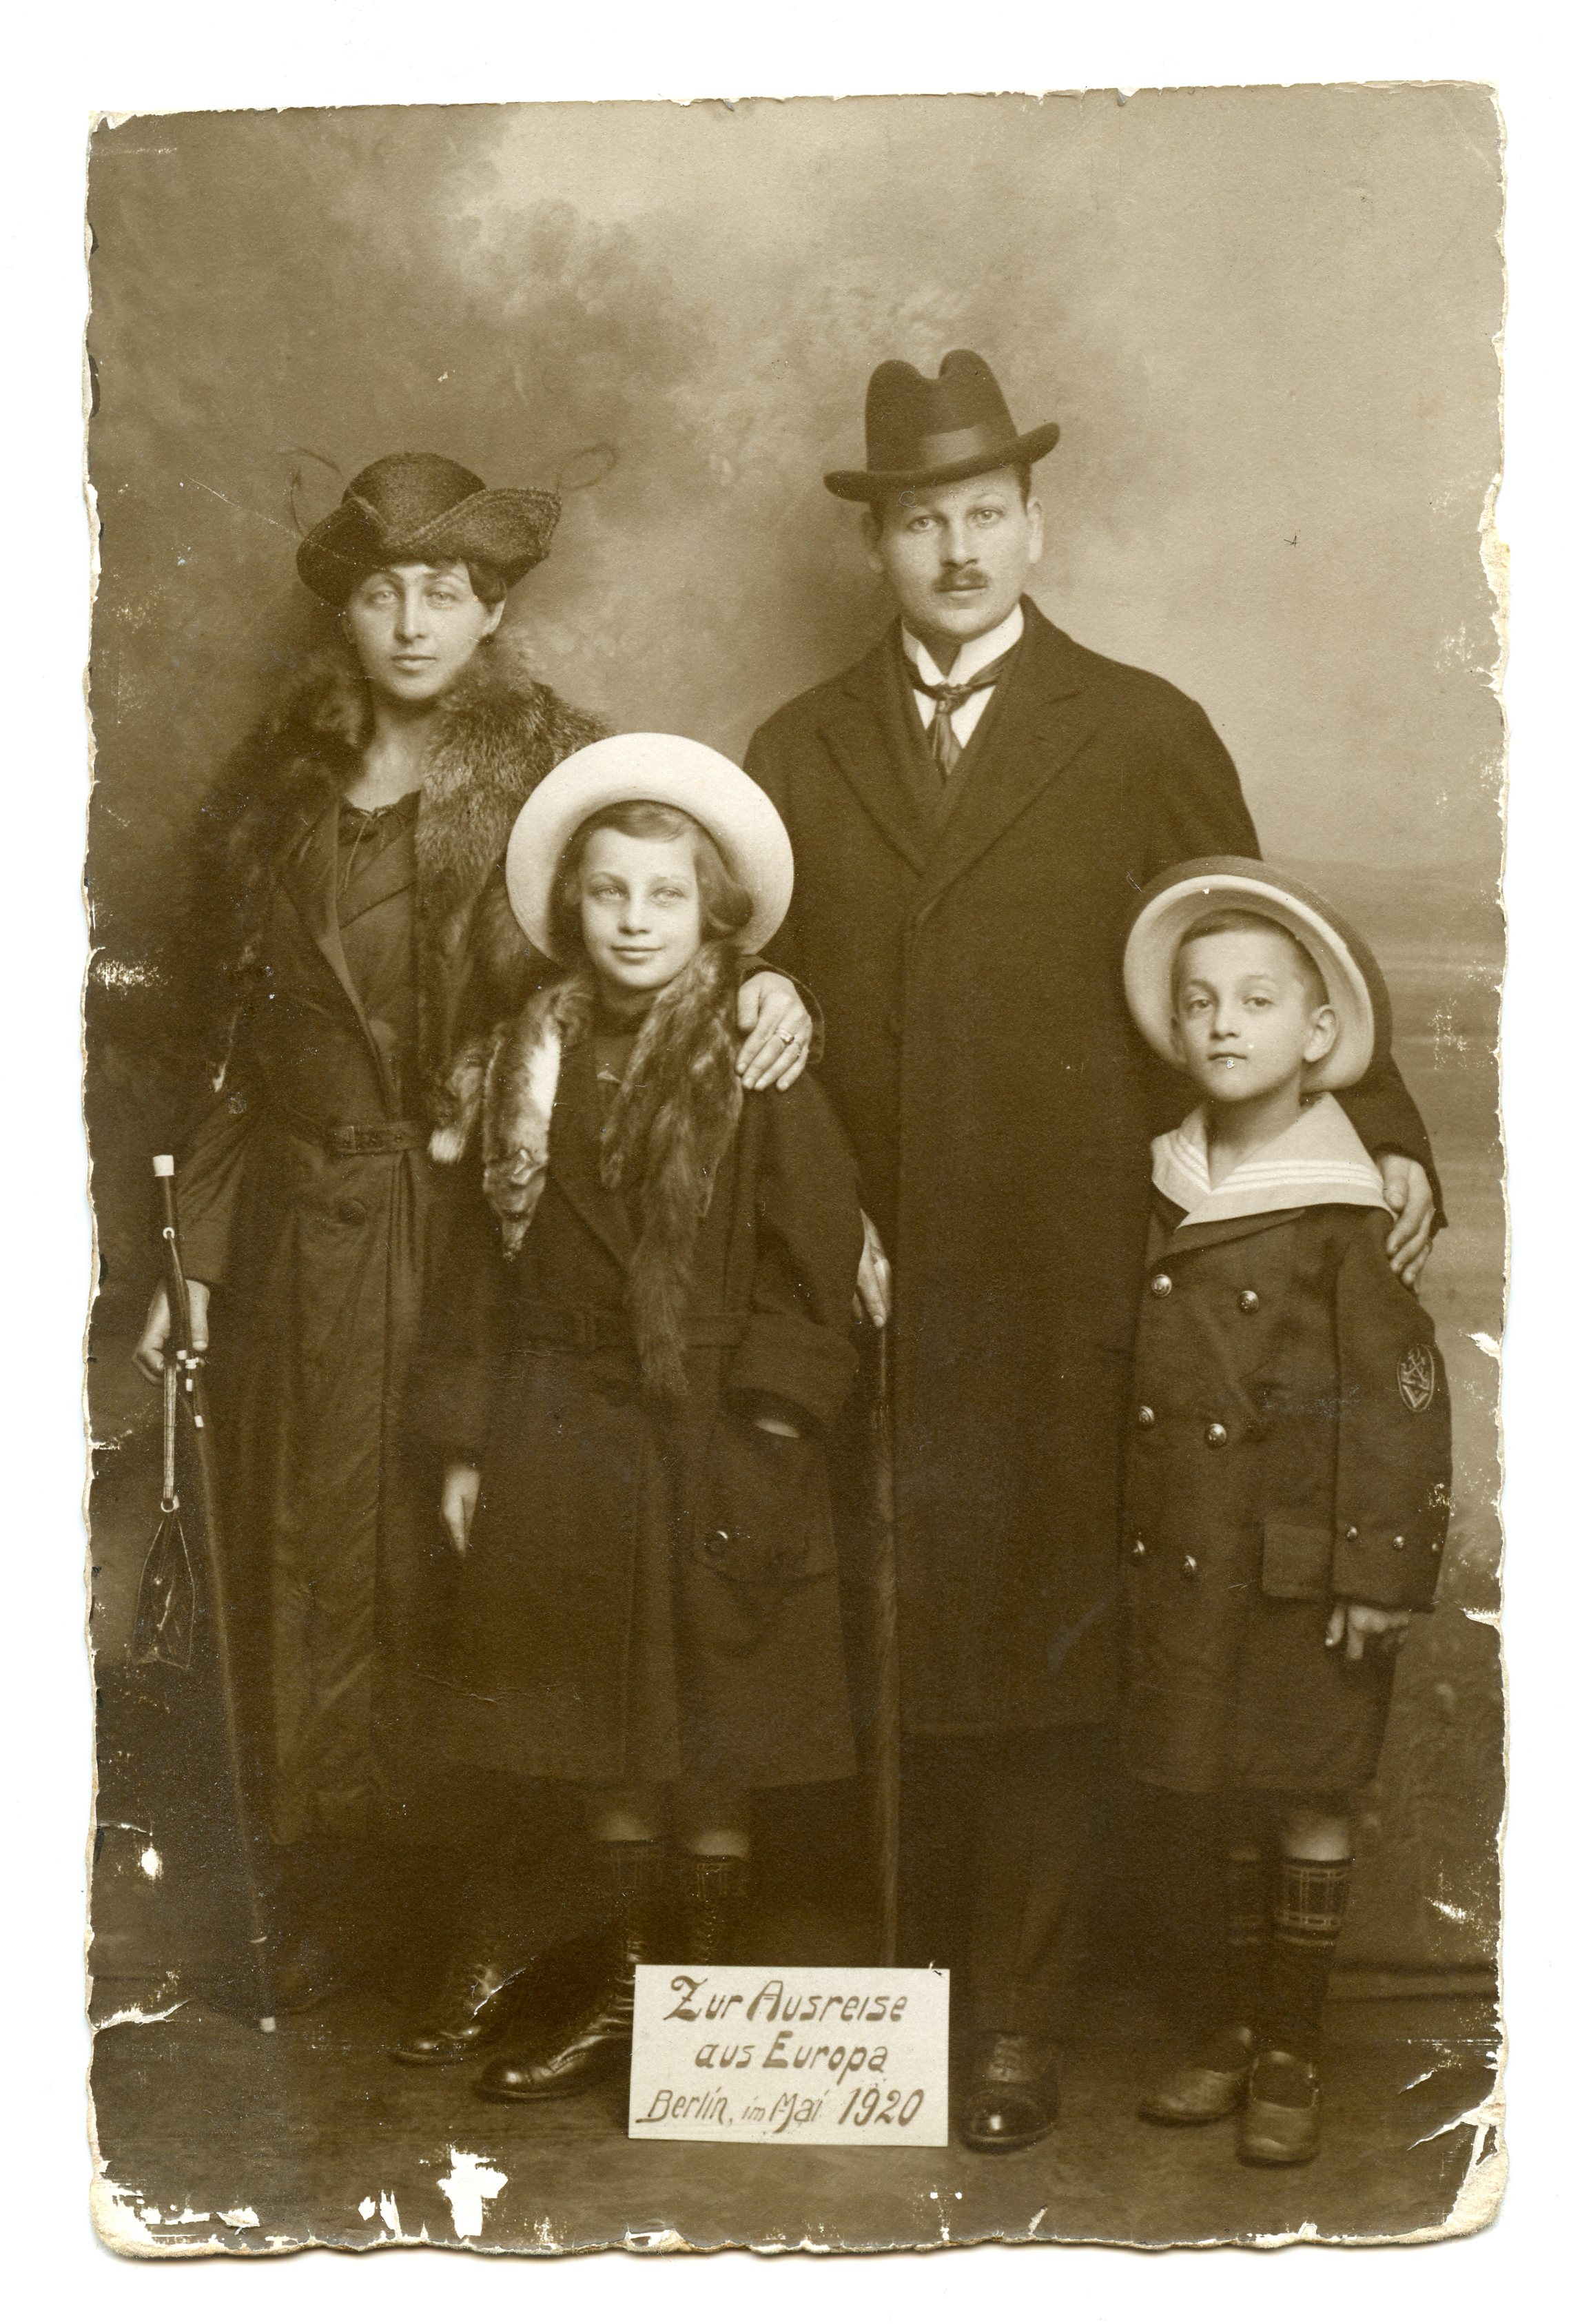 1920 - Eazak's parents and siblings before leaving Berlin, Germany